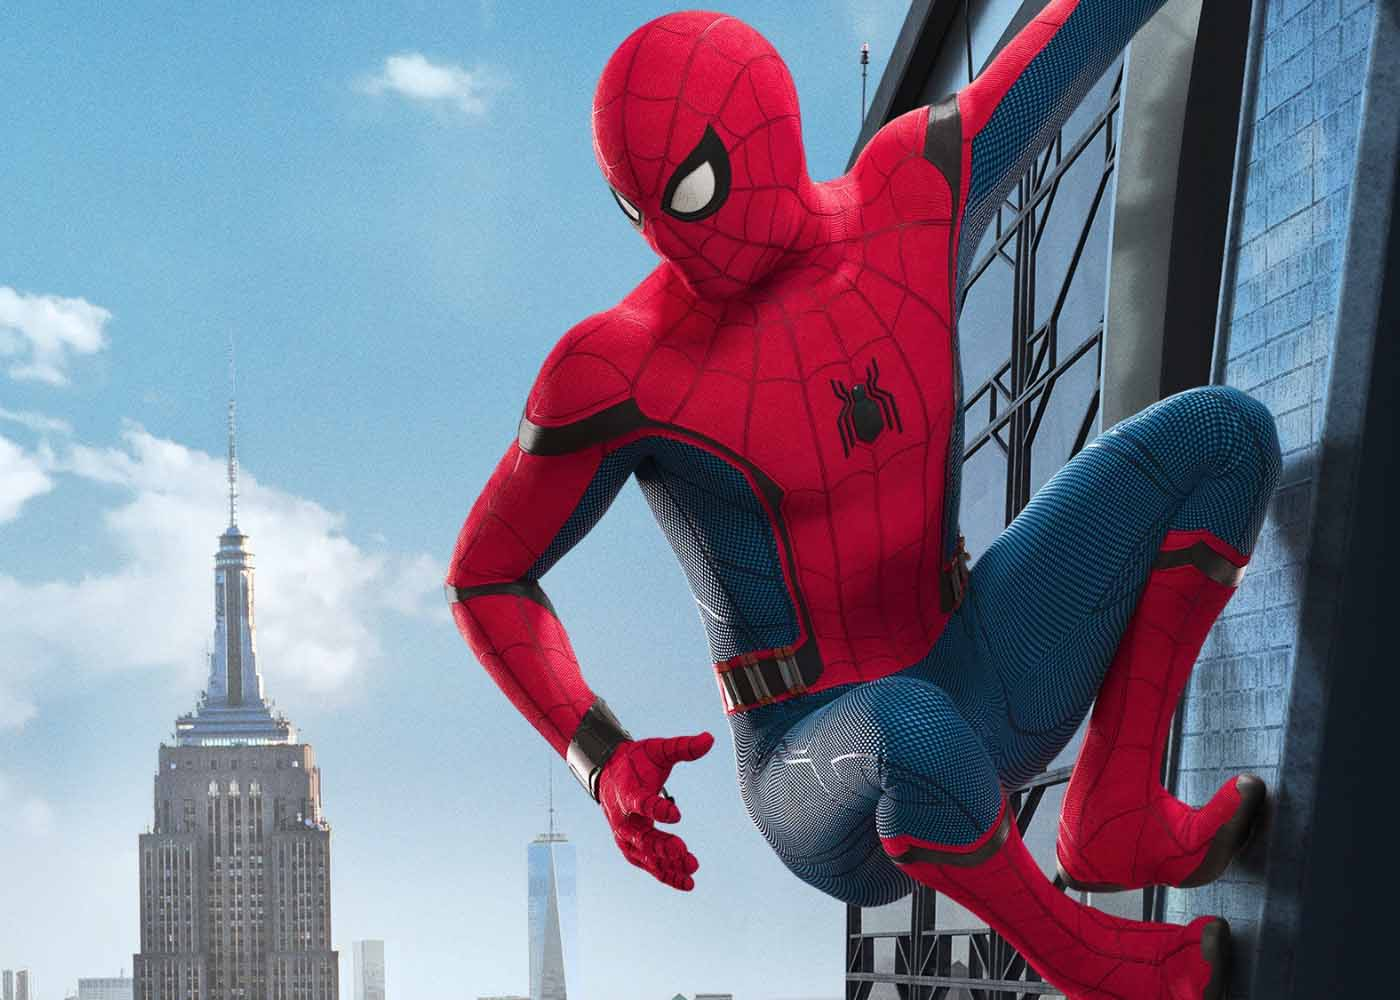 Spider-Man: Homecoming is the Spidey Story We've Been Waiting For